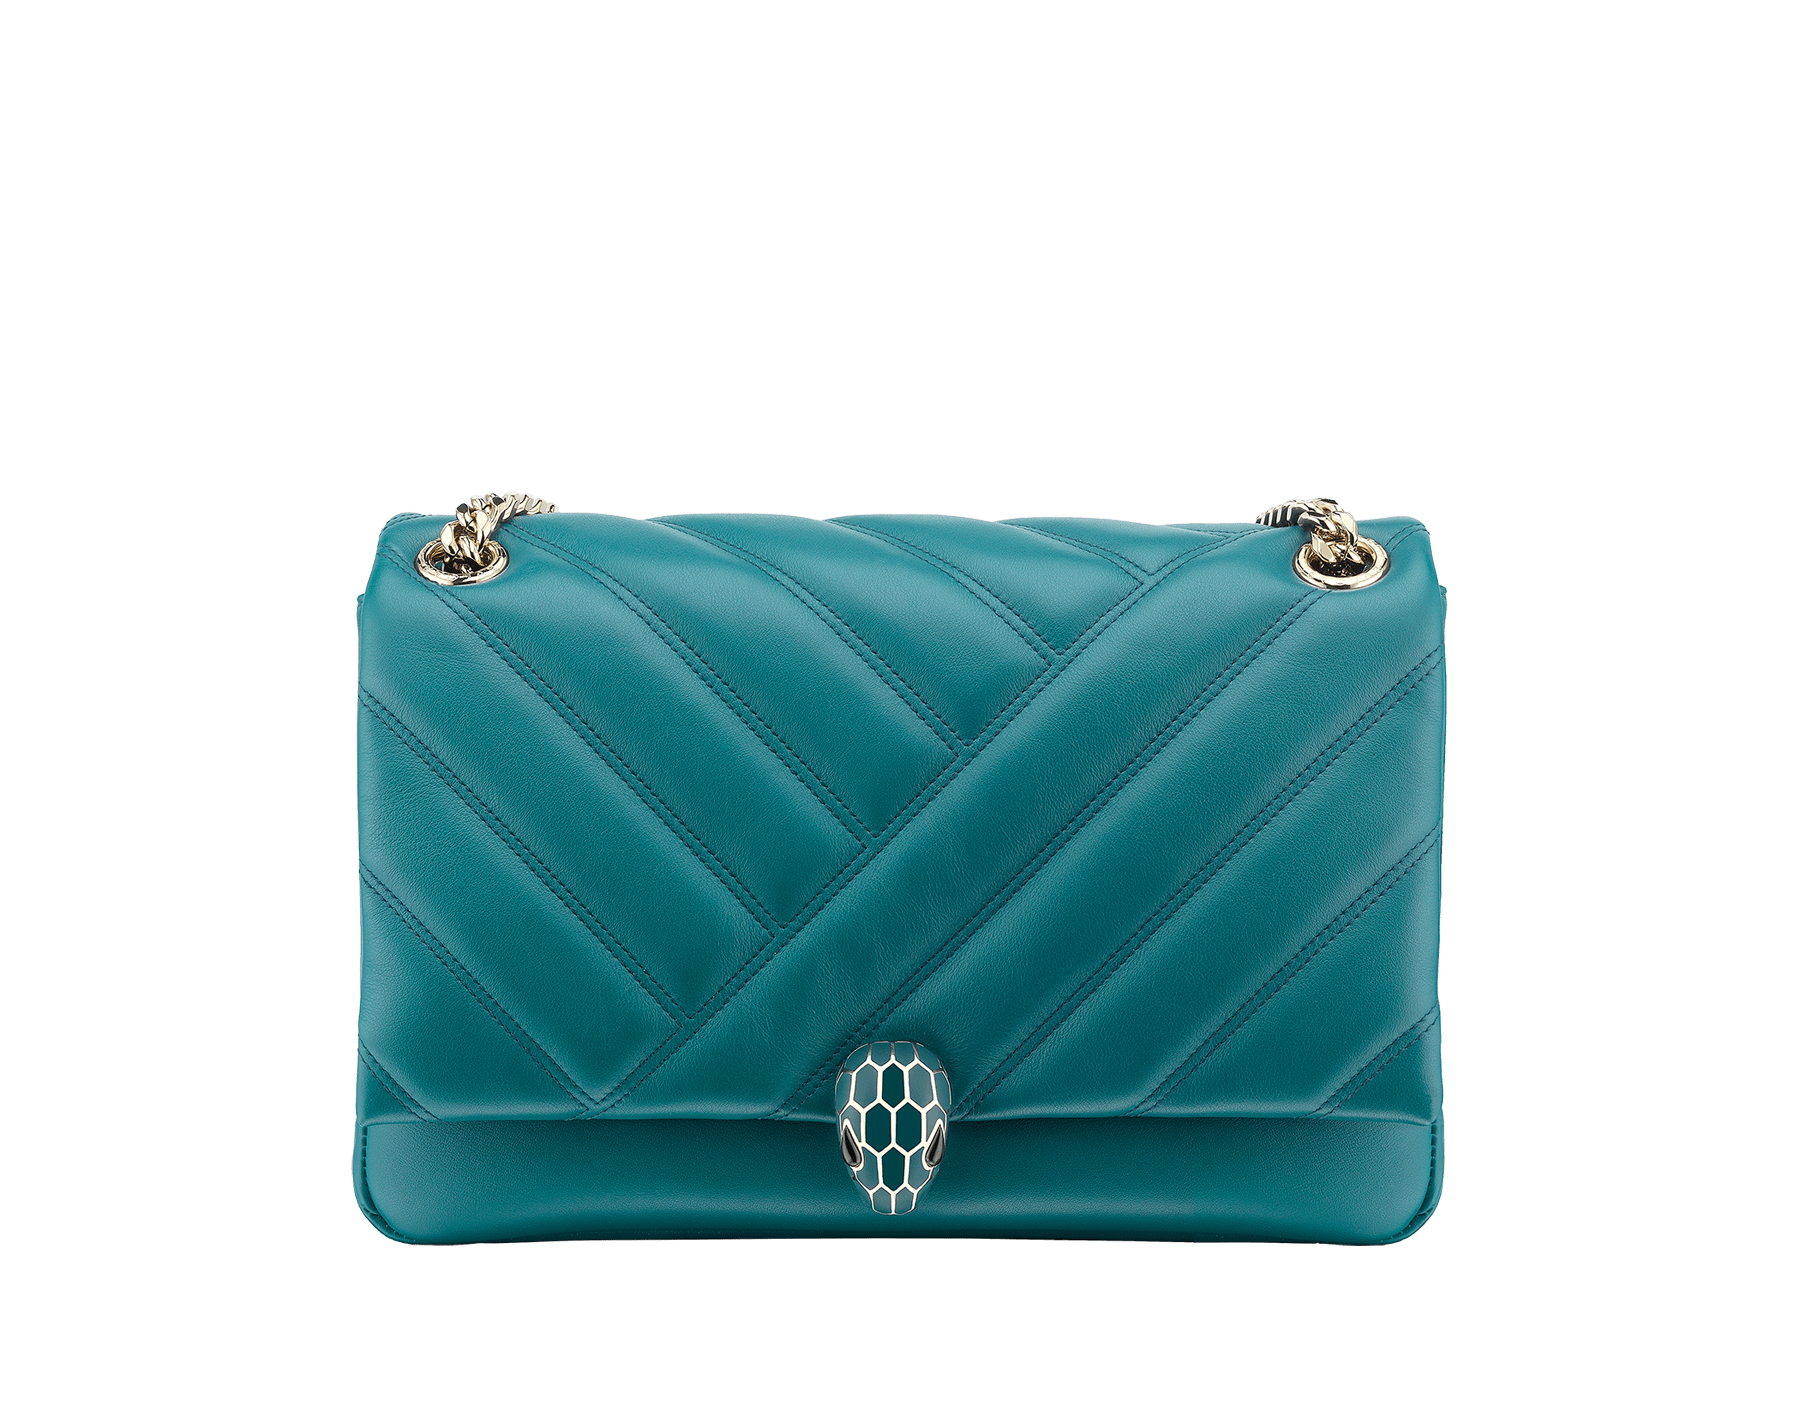 Serpenti Cabochon shoulder bag in soft matelassé white agate nappa leather with graphic motif and white agate calf leather. Snakehead closure in rose gold plated brass decorated with matte black and white enamel, and black onyx eyes. 979-NSM image 4